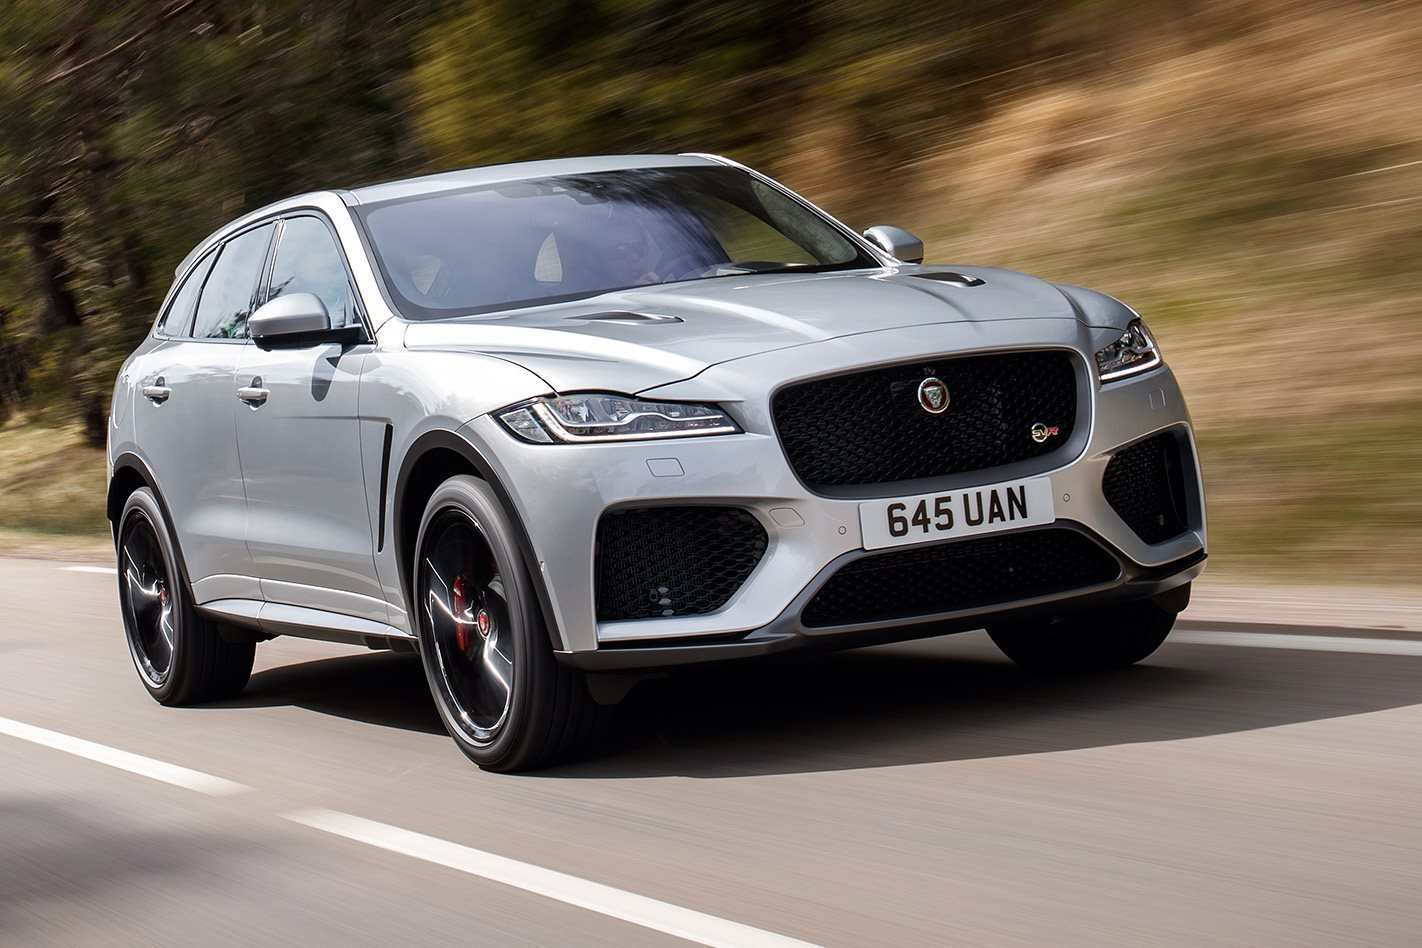 34 The 2019 Jaguar F Pace Svr 2 Spy Shoot